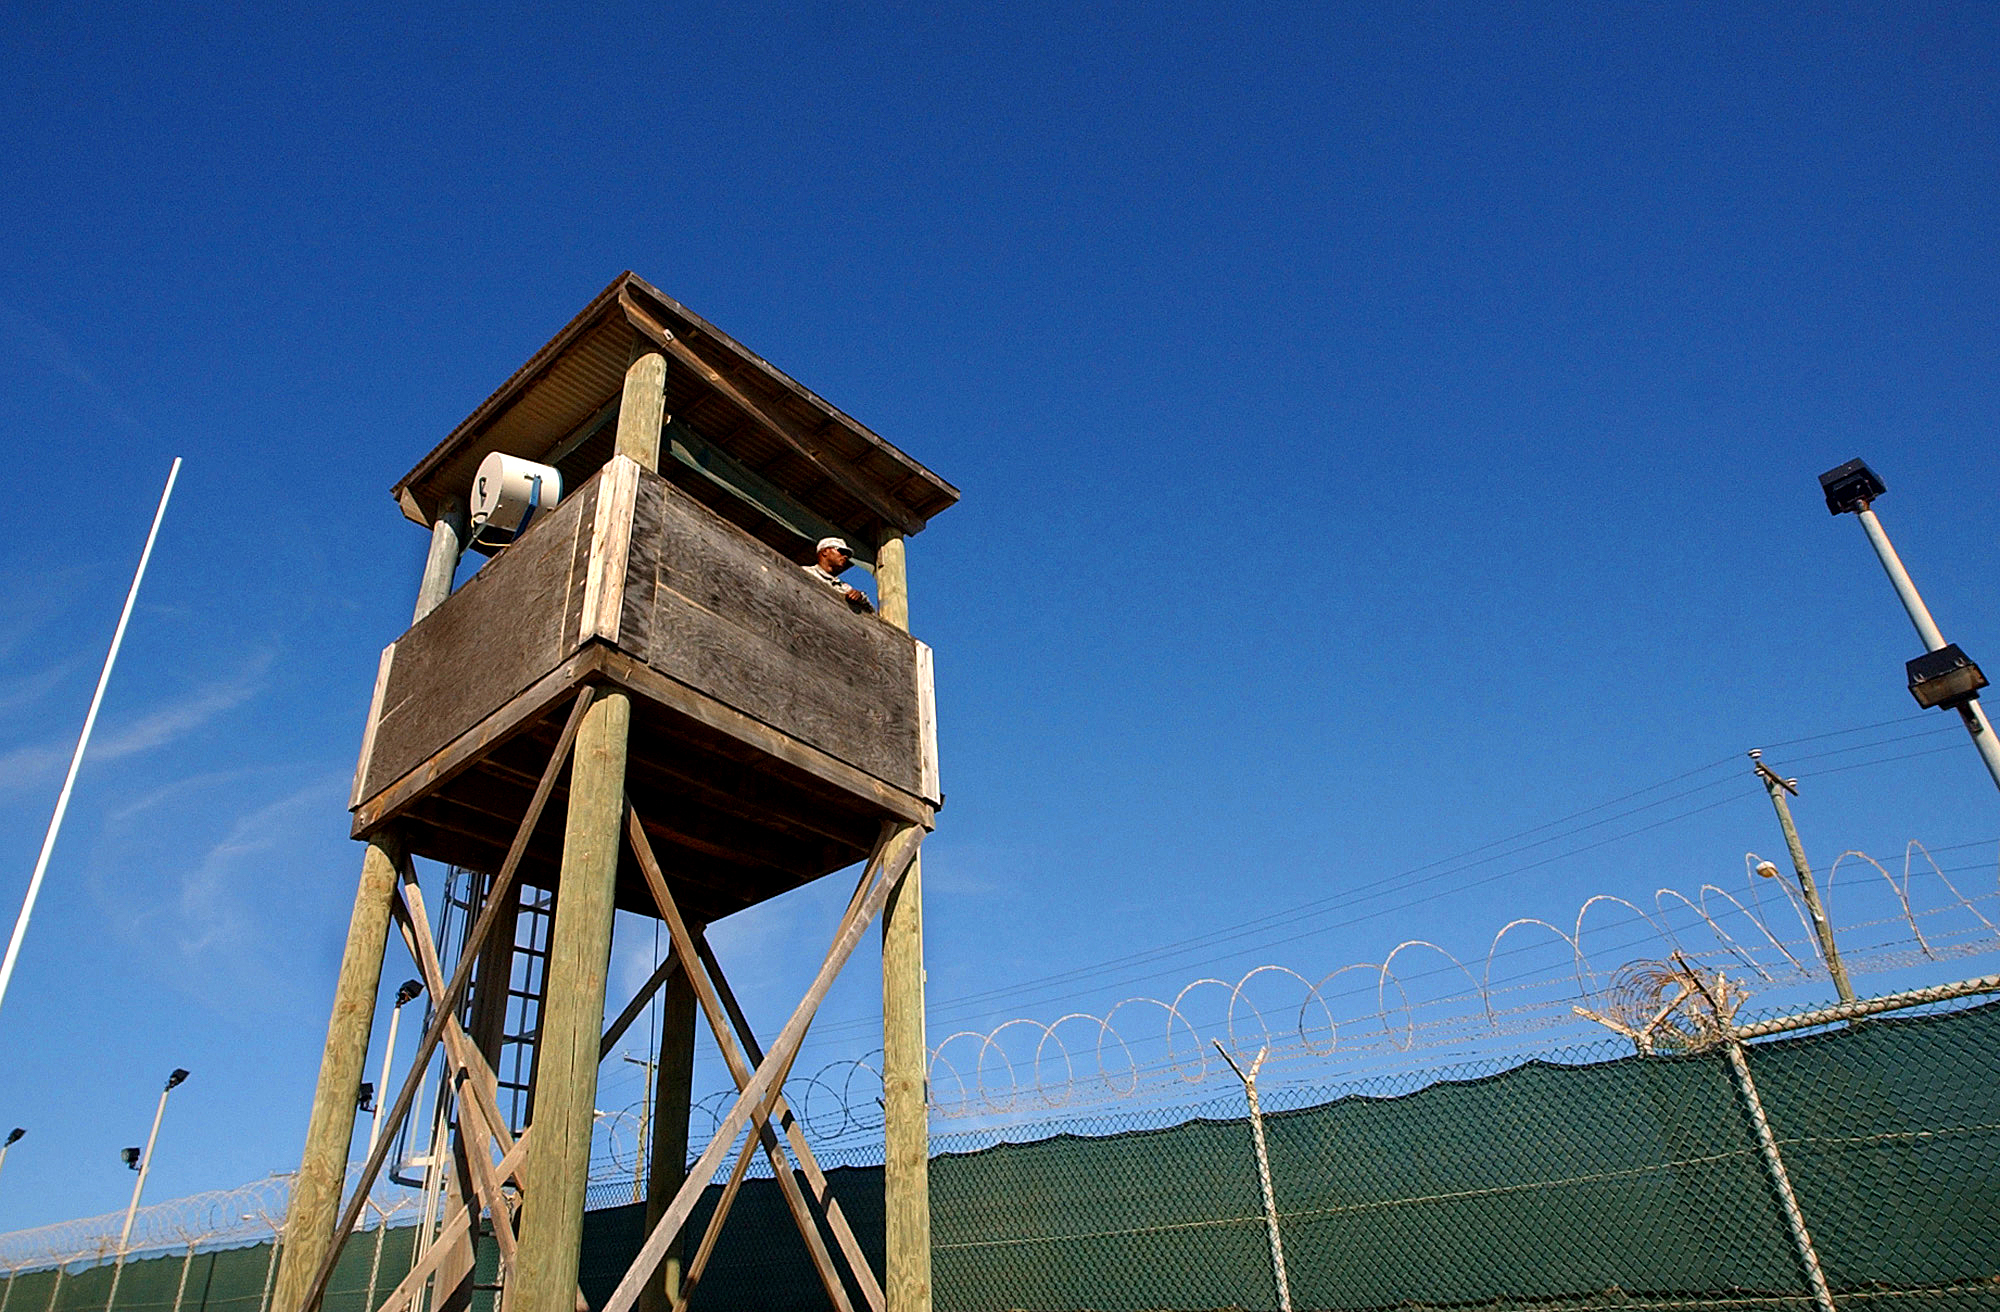 Will Guantanamo Continue As An Unnecessary Presidential Legacy?